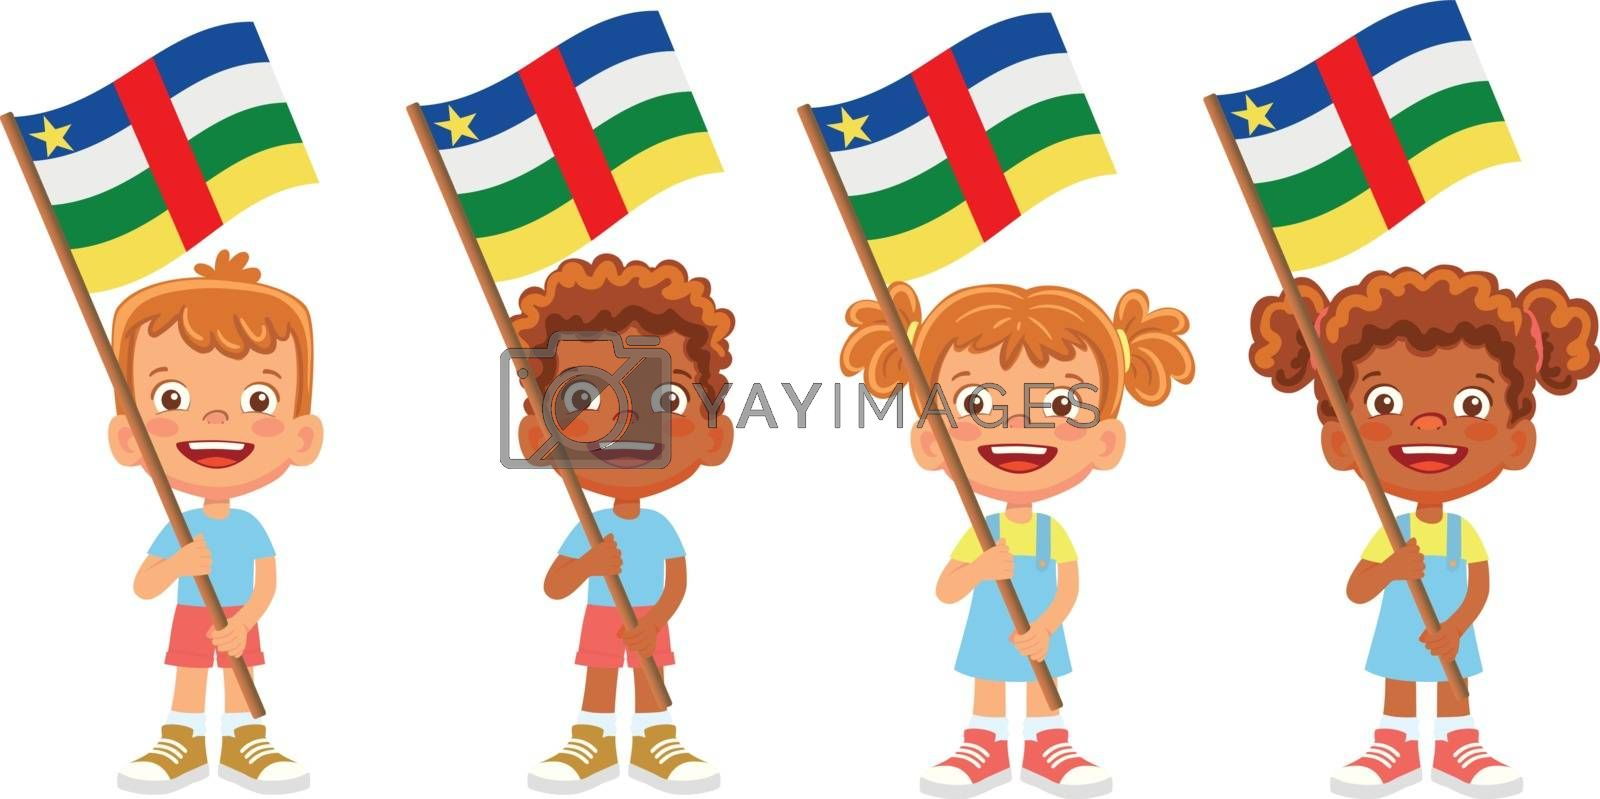 Central African Republic flag in hand. Children holding flag. National flag of Central African Republic vector